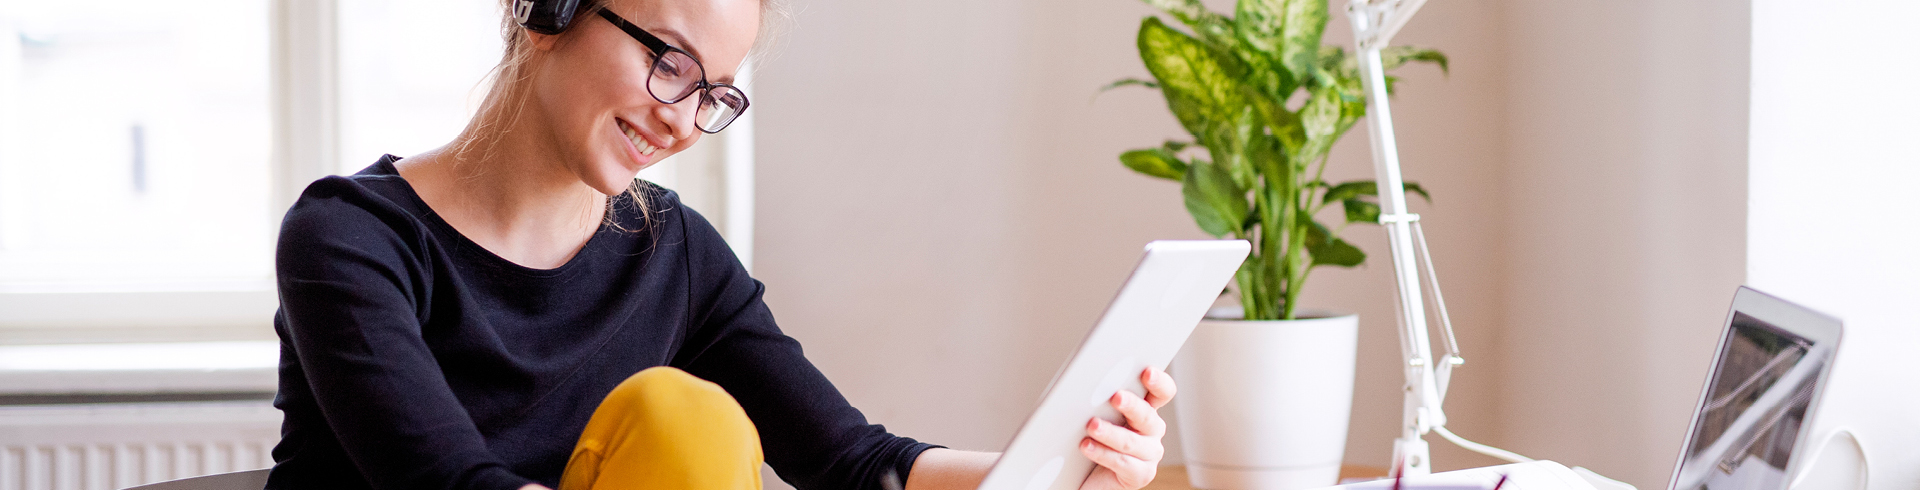 Image of a woman looking at tablet device